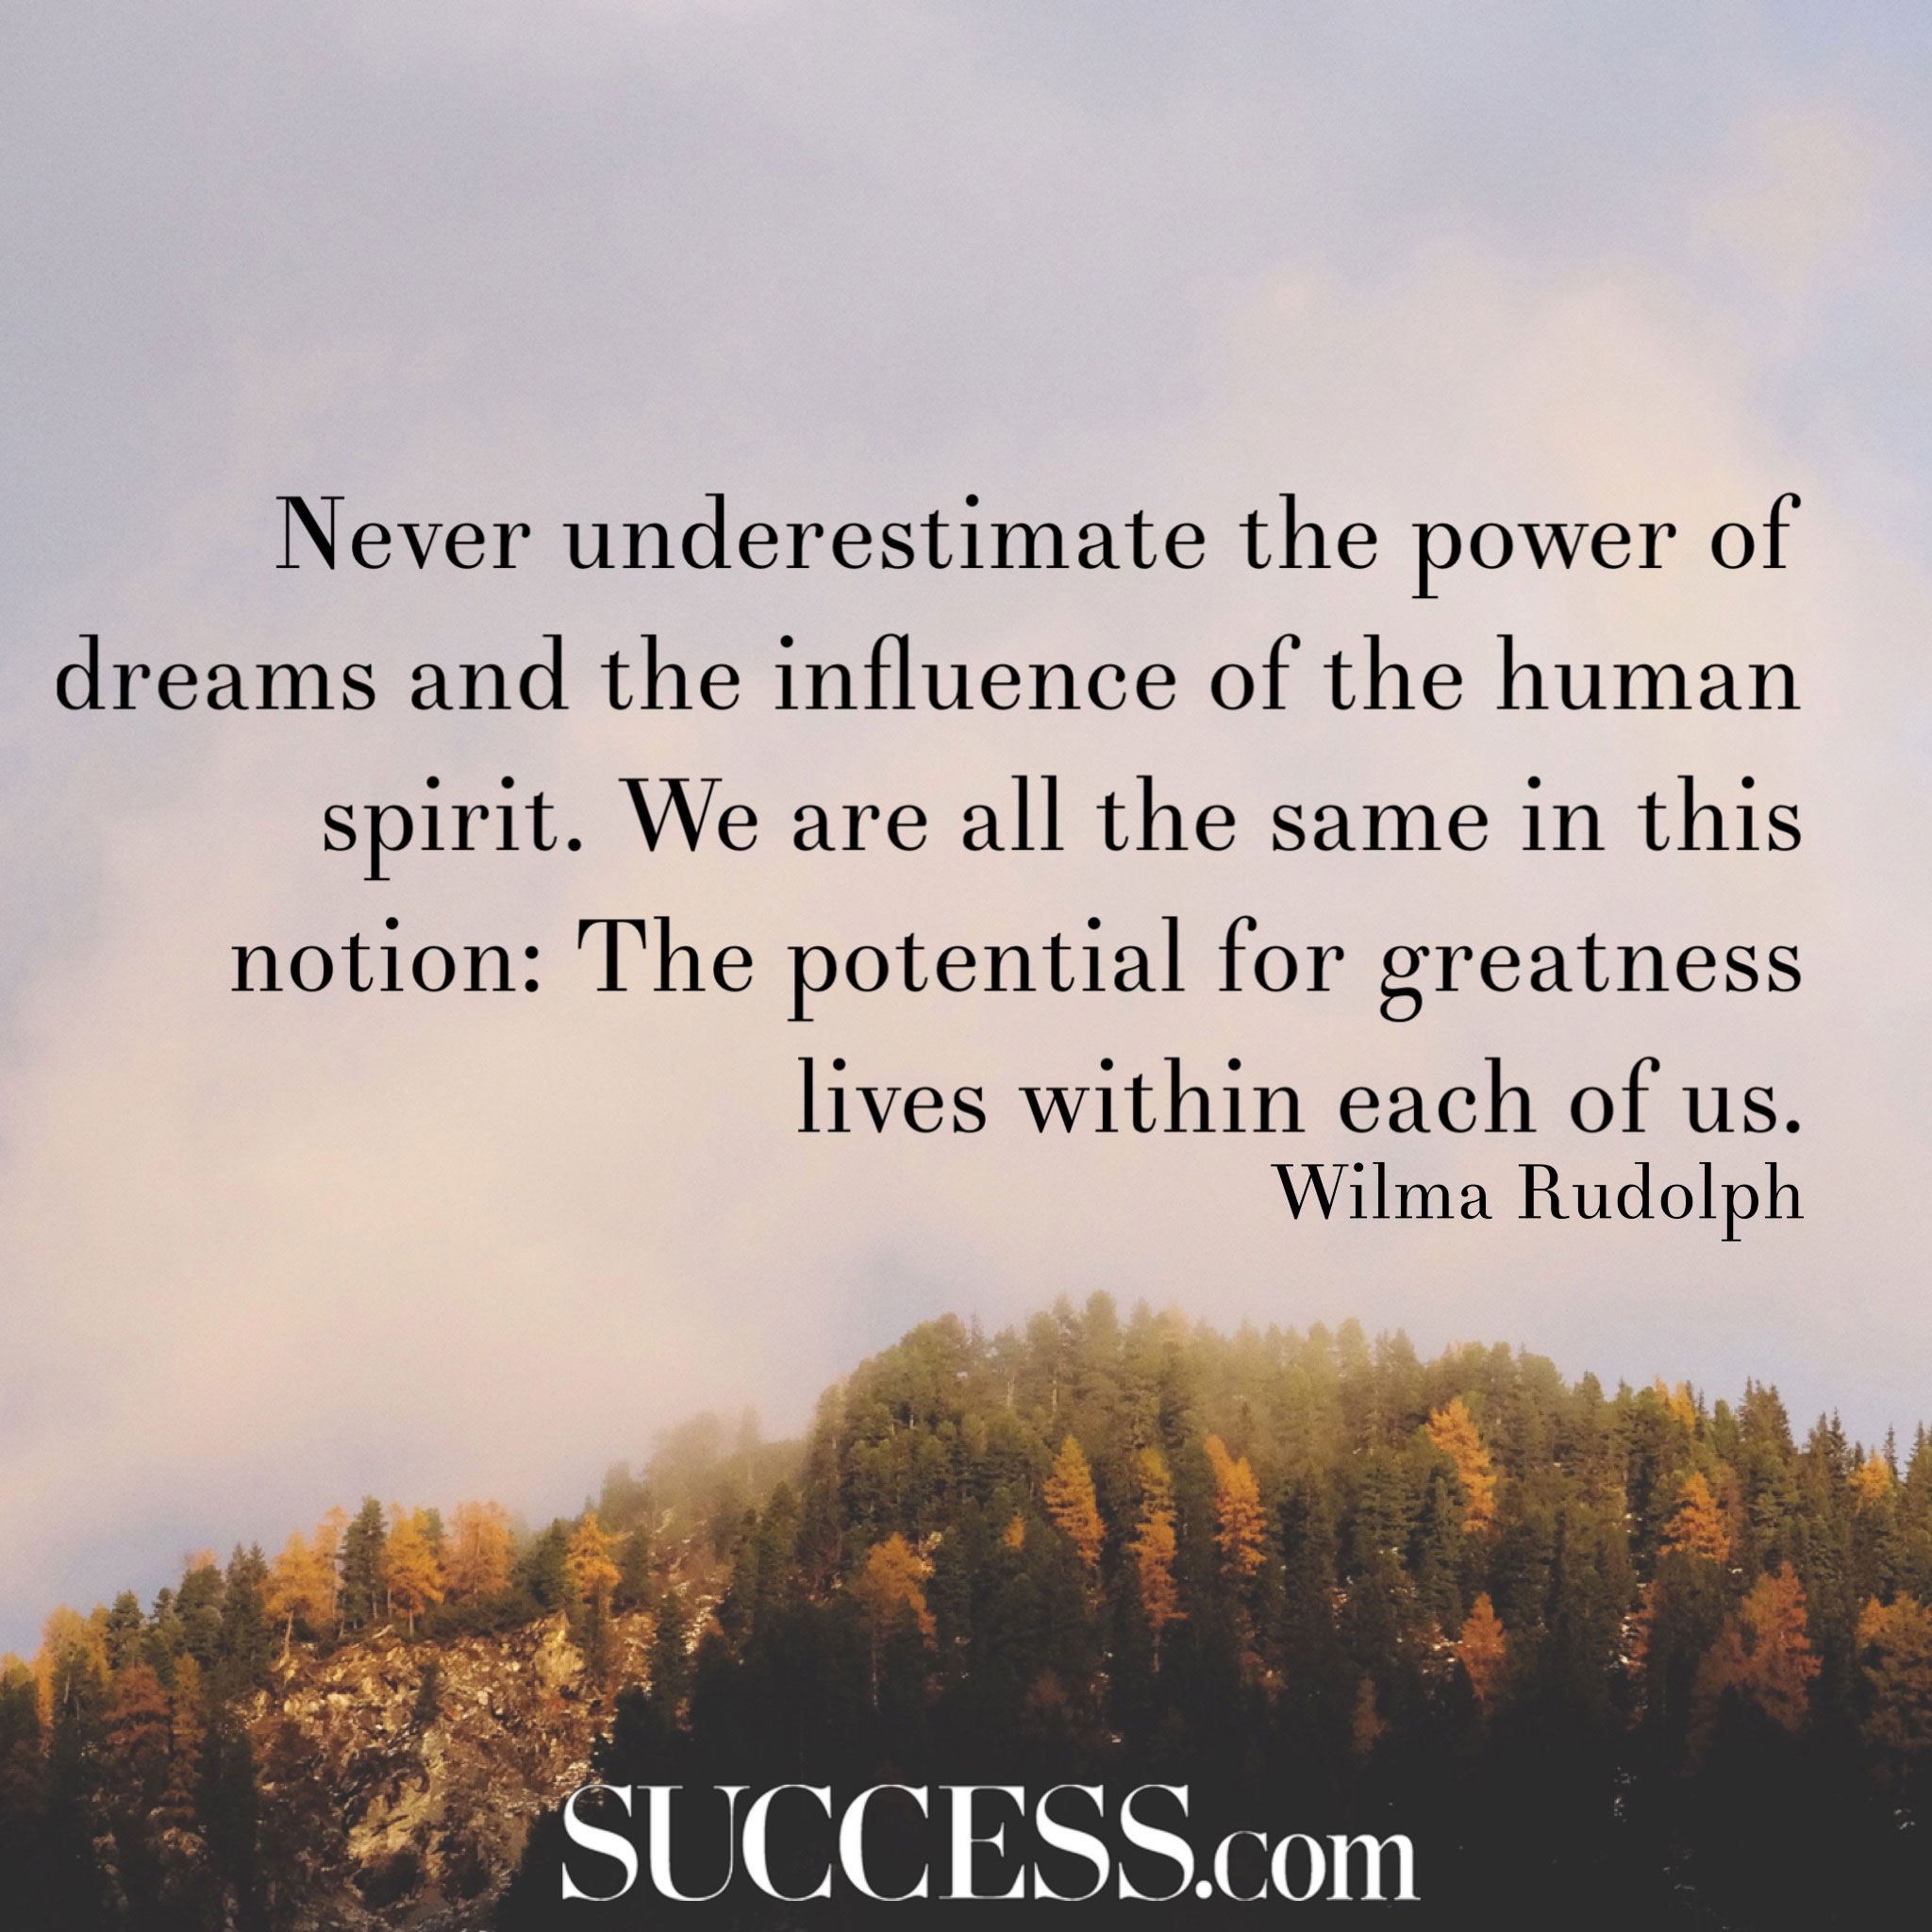 5 Powerful Quotes to Inspire Greatness  SUCCESS